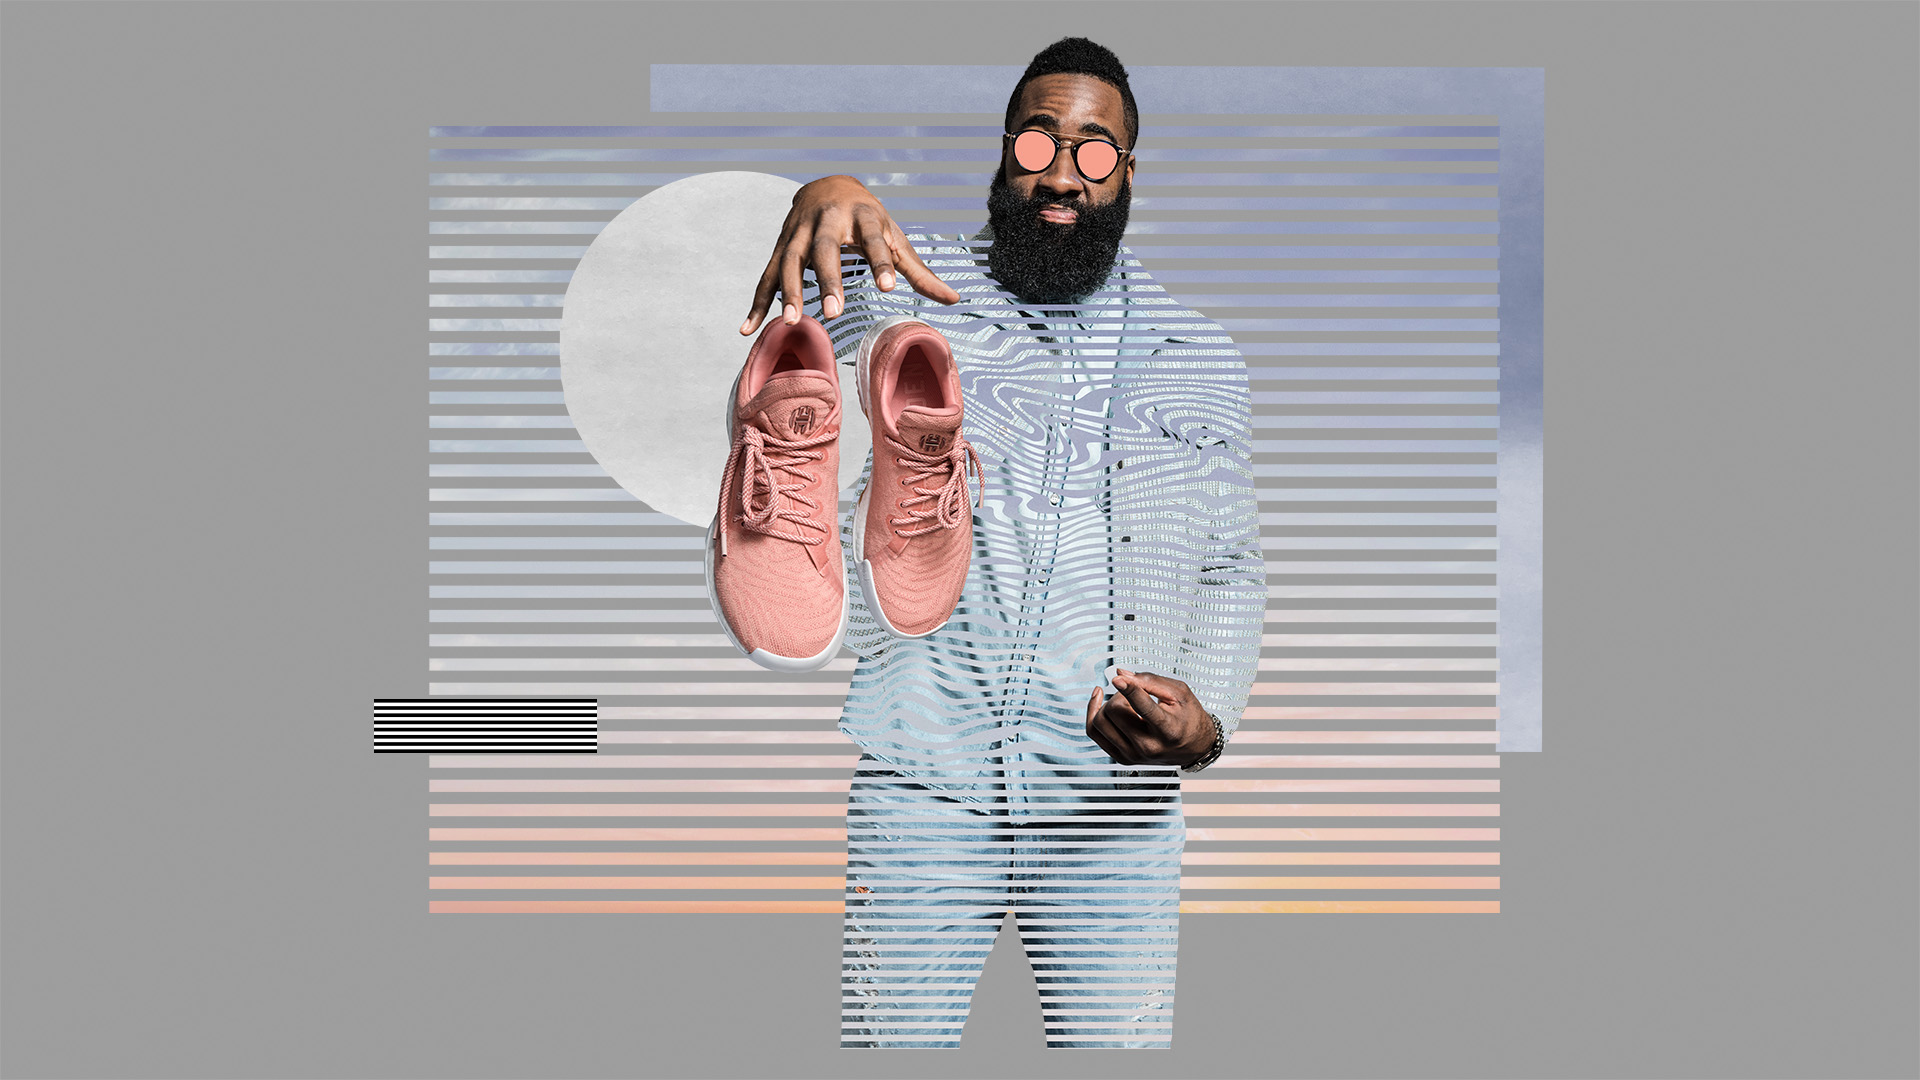 bda4907ef26a49 Adidas Introduces James Harden s New Sneaker  the Harden LS